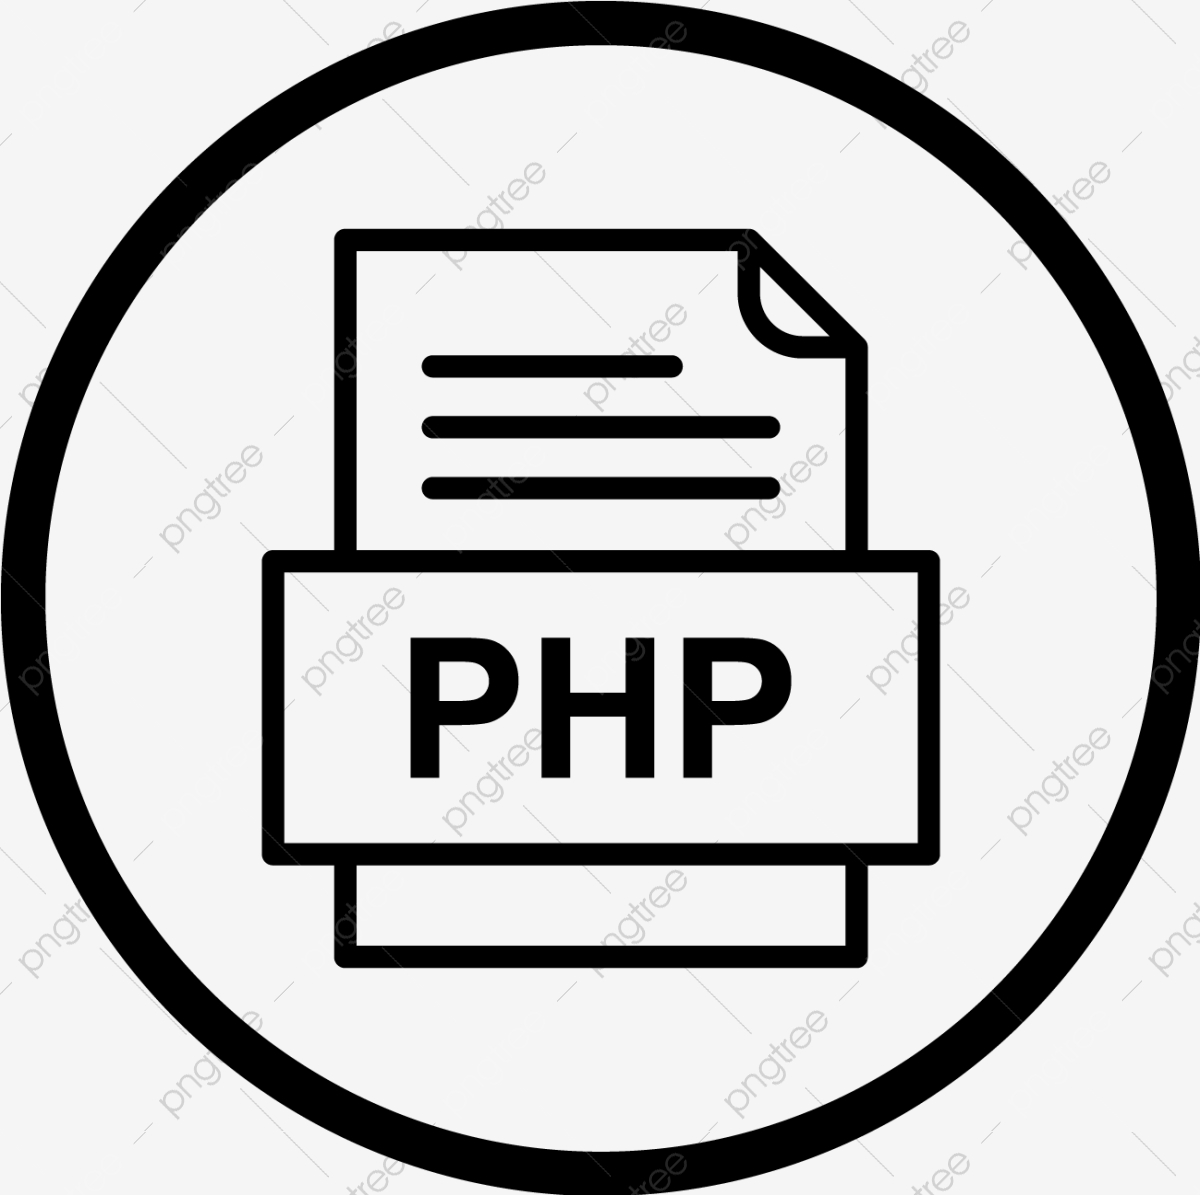 PHP Page - Free interface icons   1195x1200